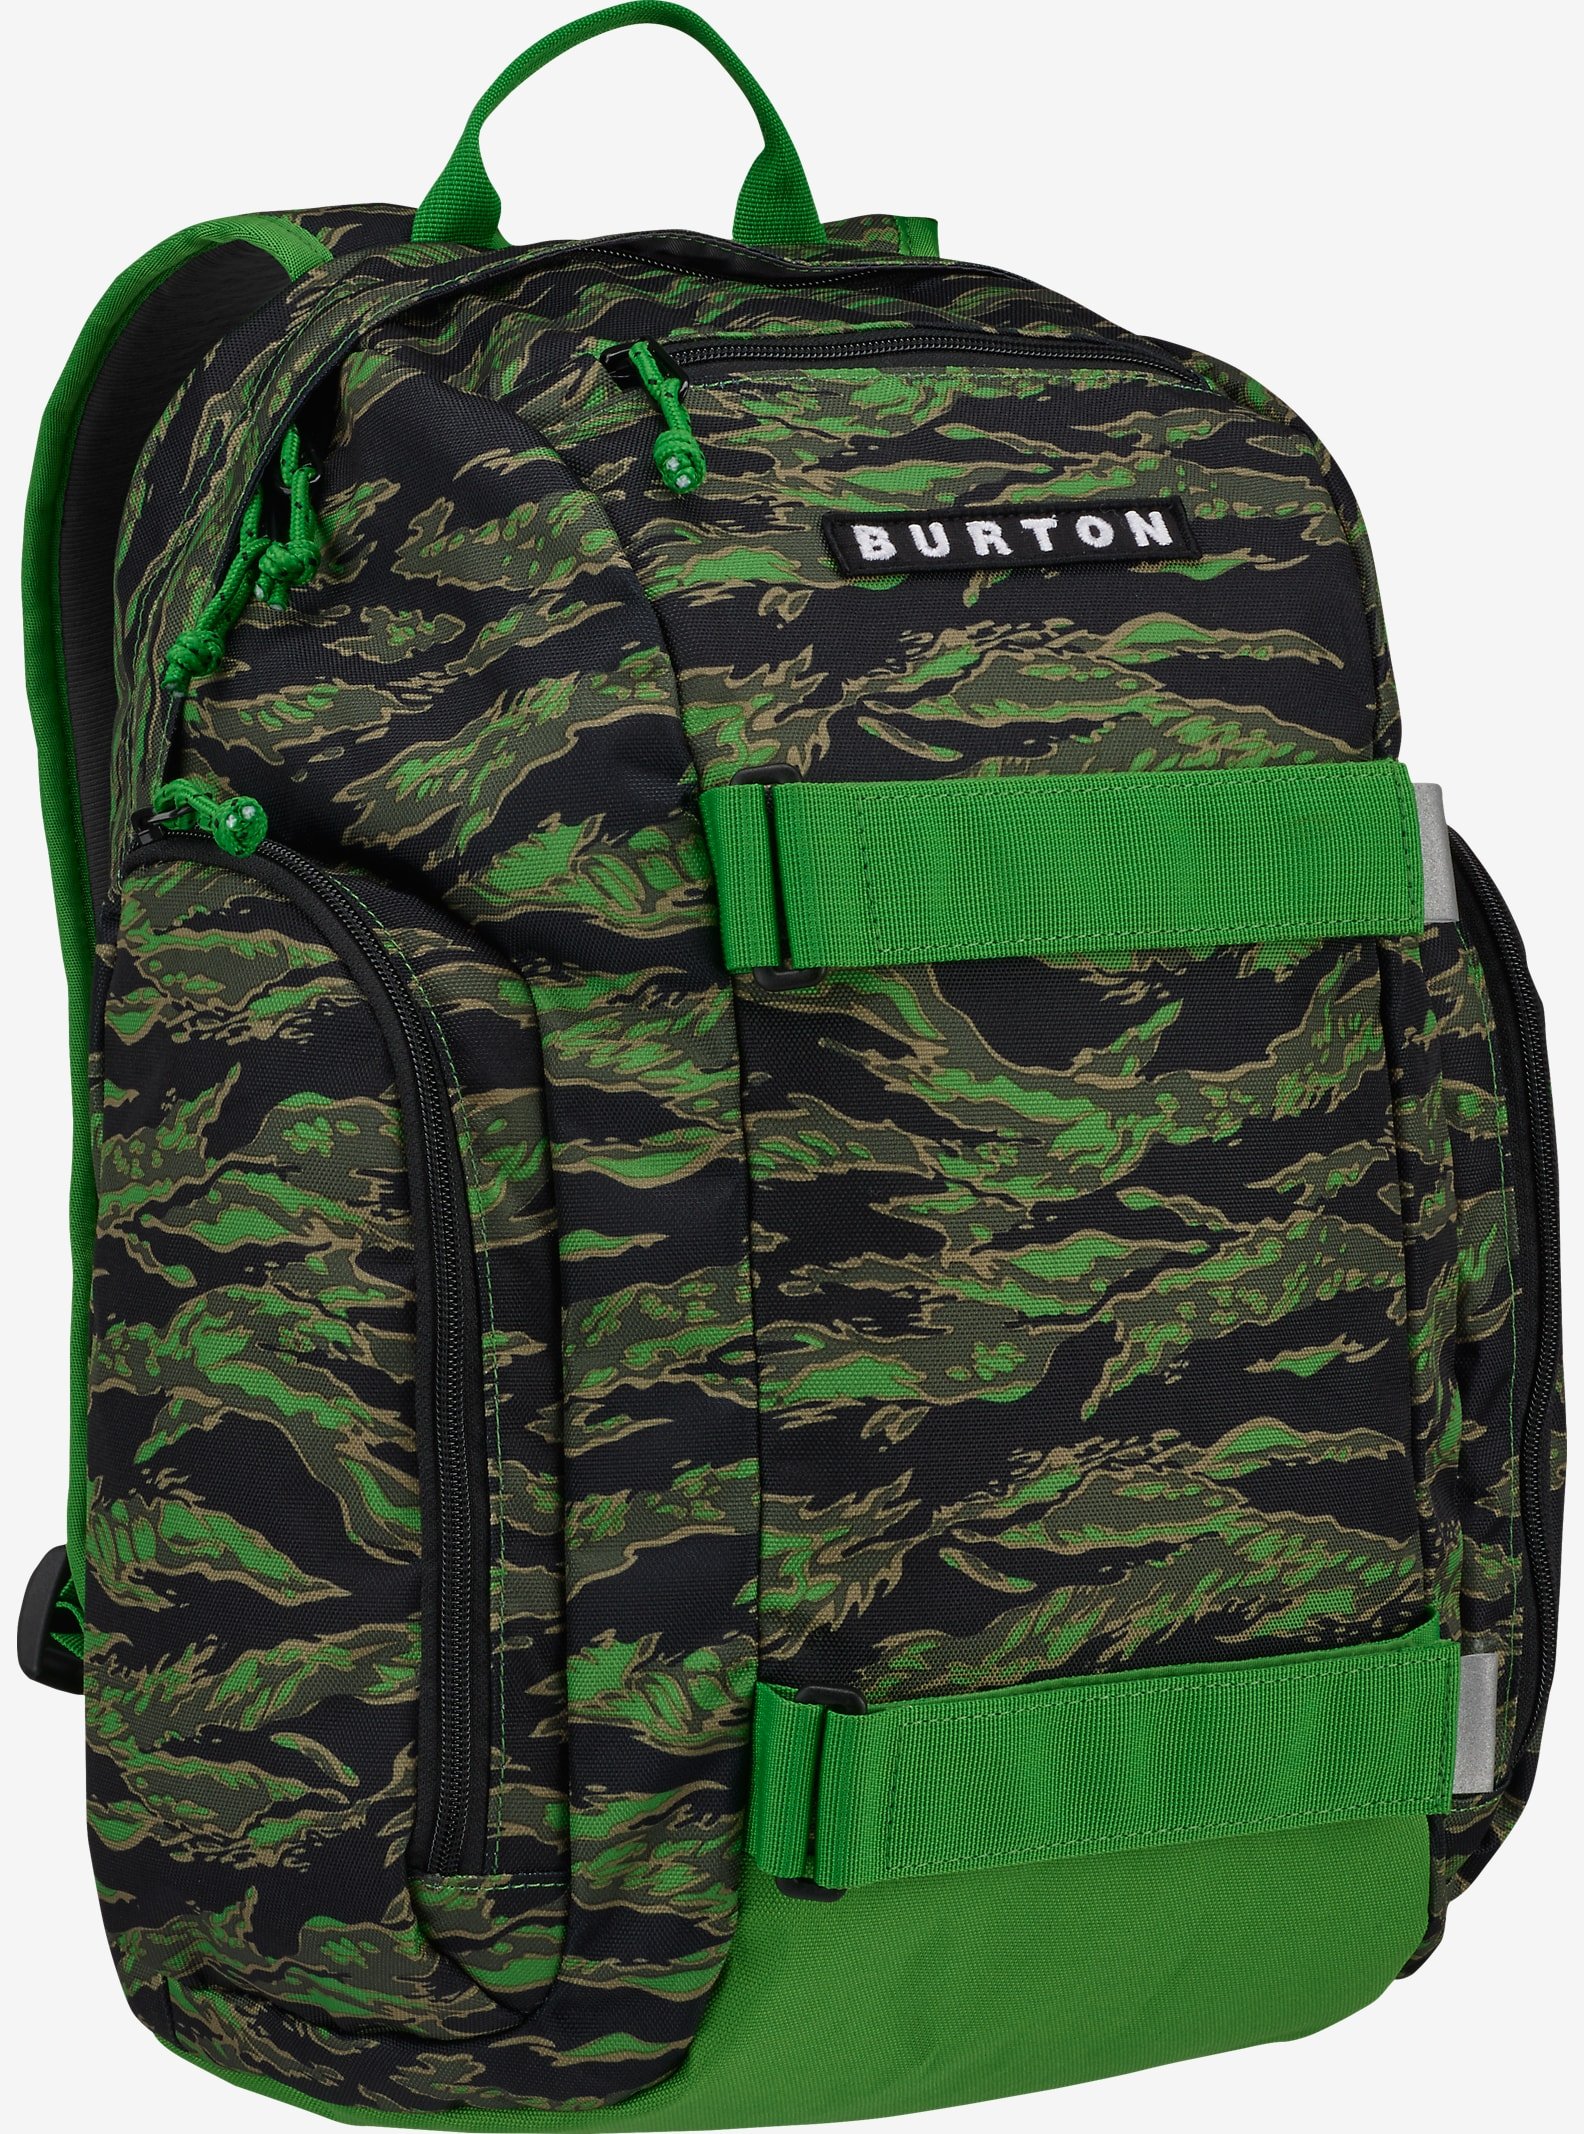 Burton Kids' Metalhead Backpack shown in Slime Camo Print